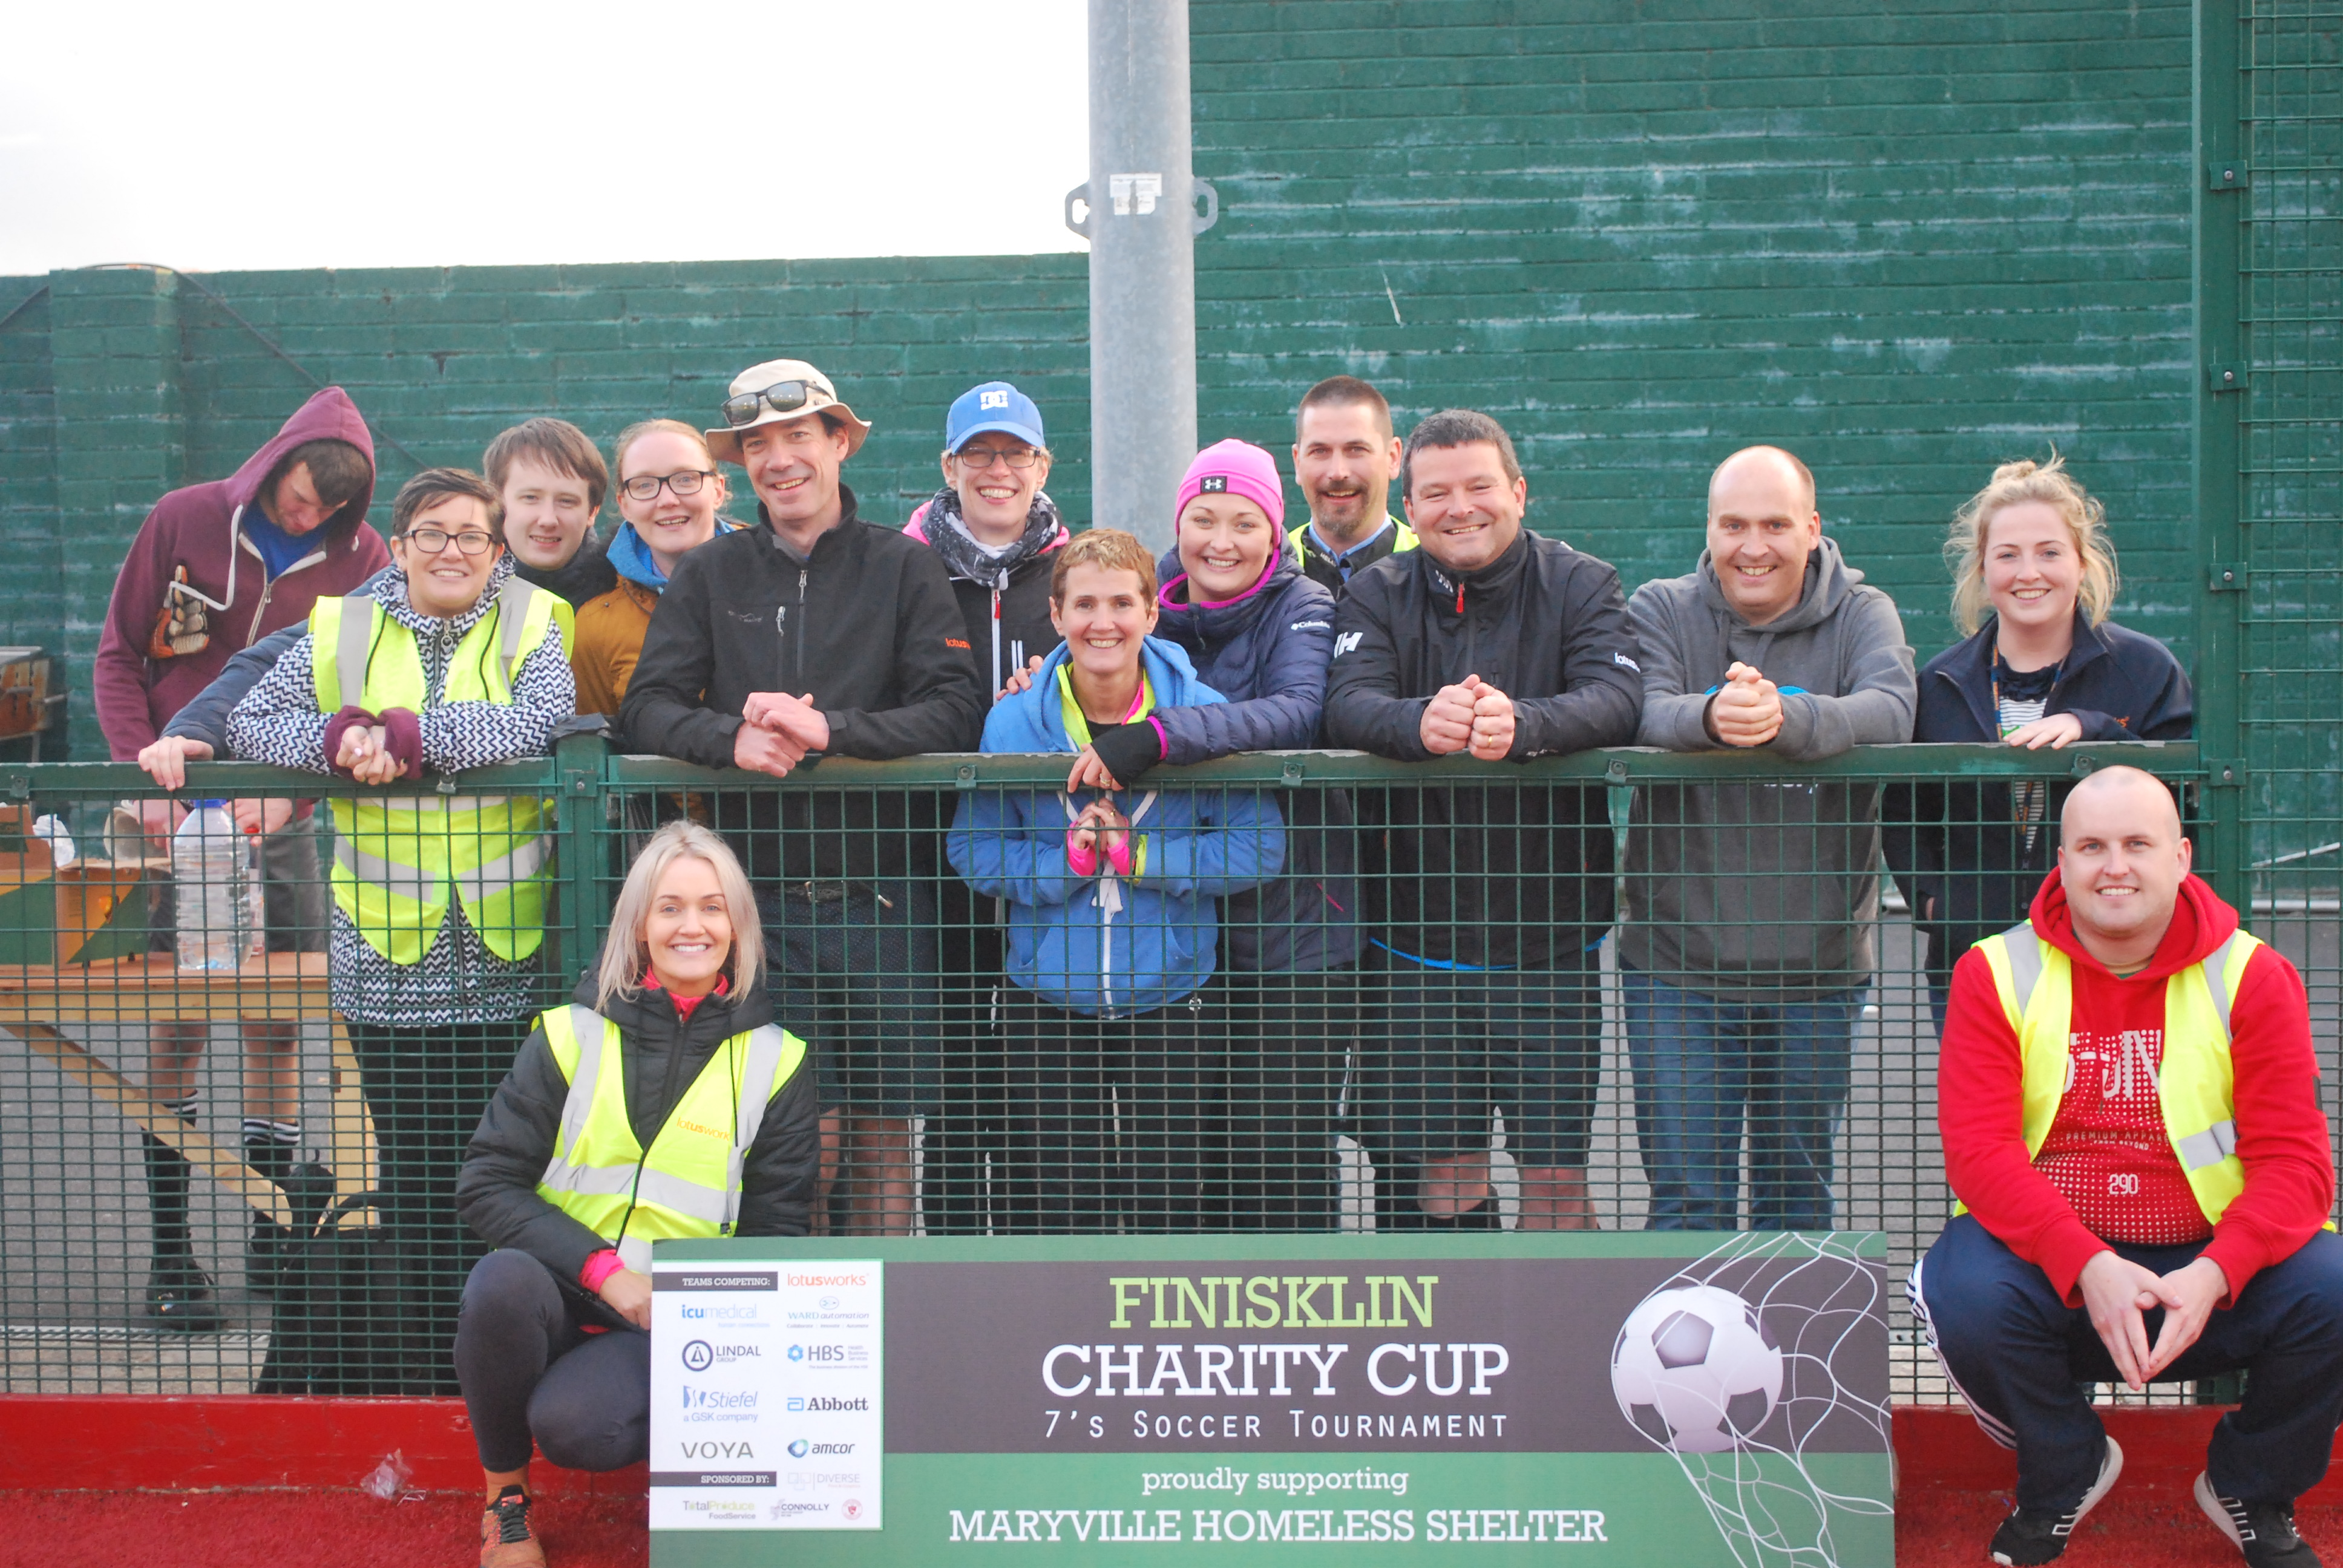 Finisklin charity cup, CSR, Giving back